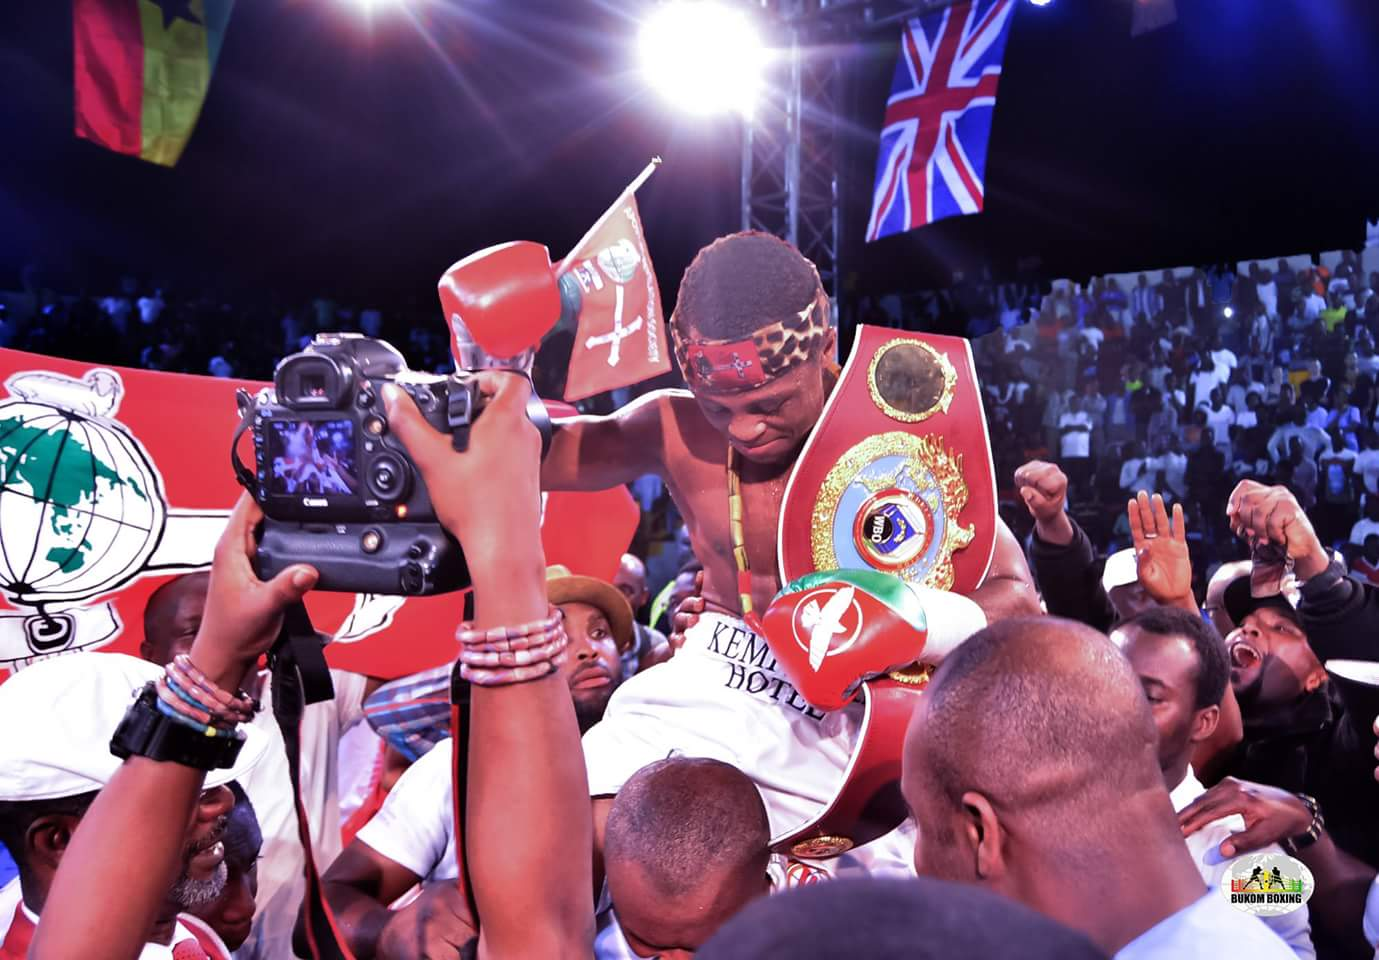 """Cesar Juarez - Last night in front of his adoring fans in Accra, Ghana - in the first """"world"""" title fight of 2018 - unbeaten warrior Isaac Dogboe won a thrilling action fight with Mexico's Cesar Juarez. Dogboe, 18-0(12) weathered a hellish early storm from the 20-6(15) Juarez to come on and get the stoppage in round-five."""